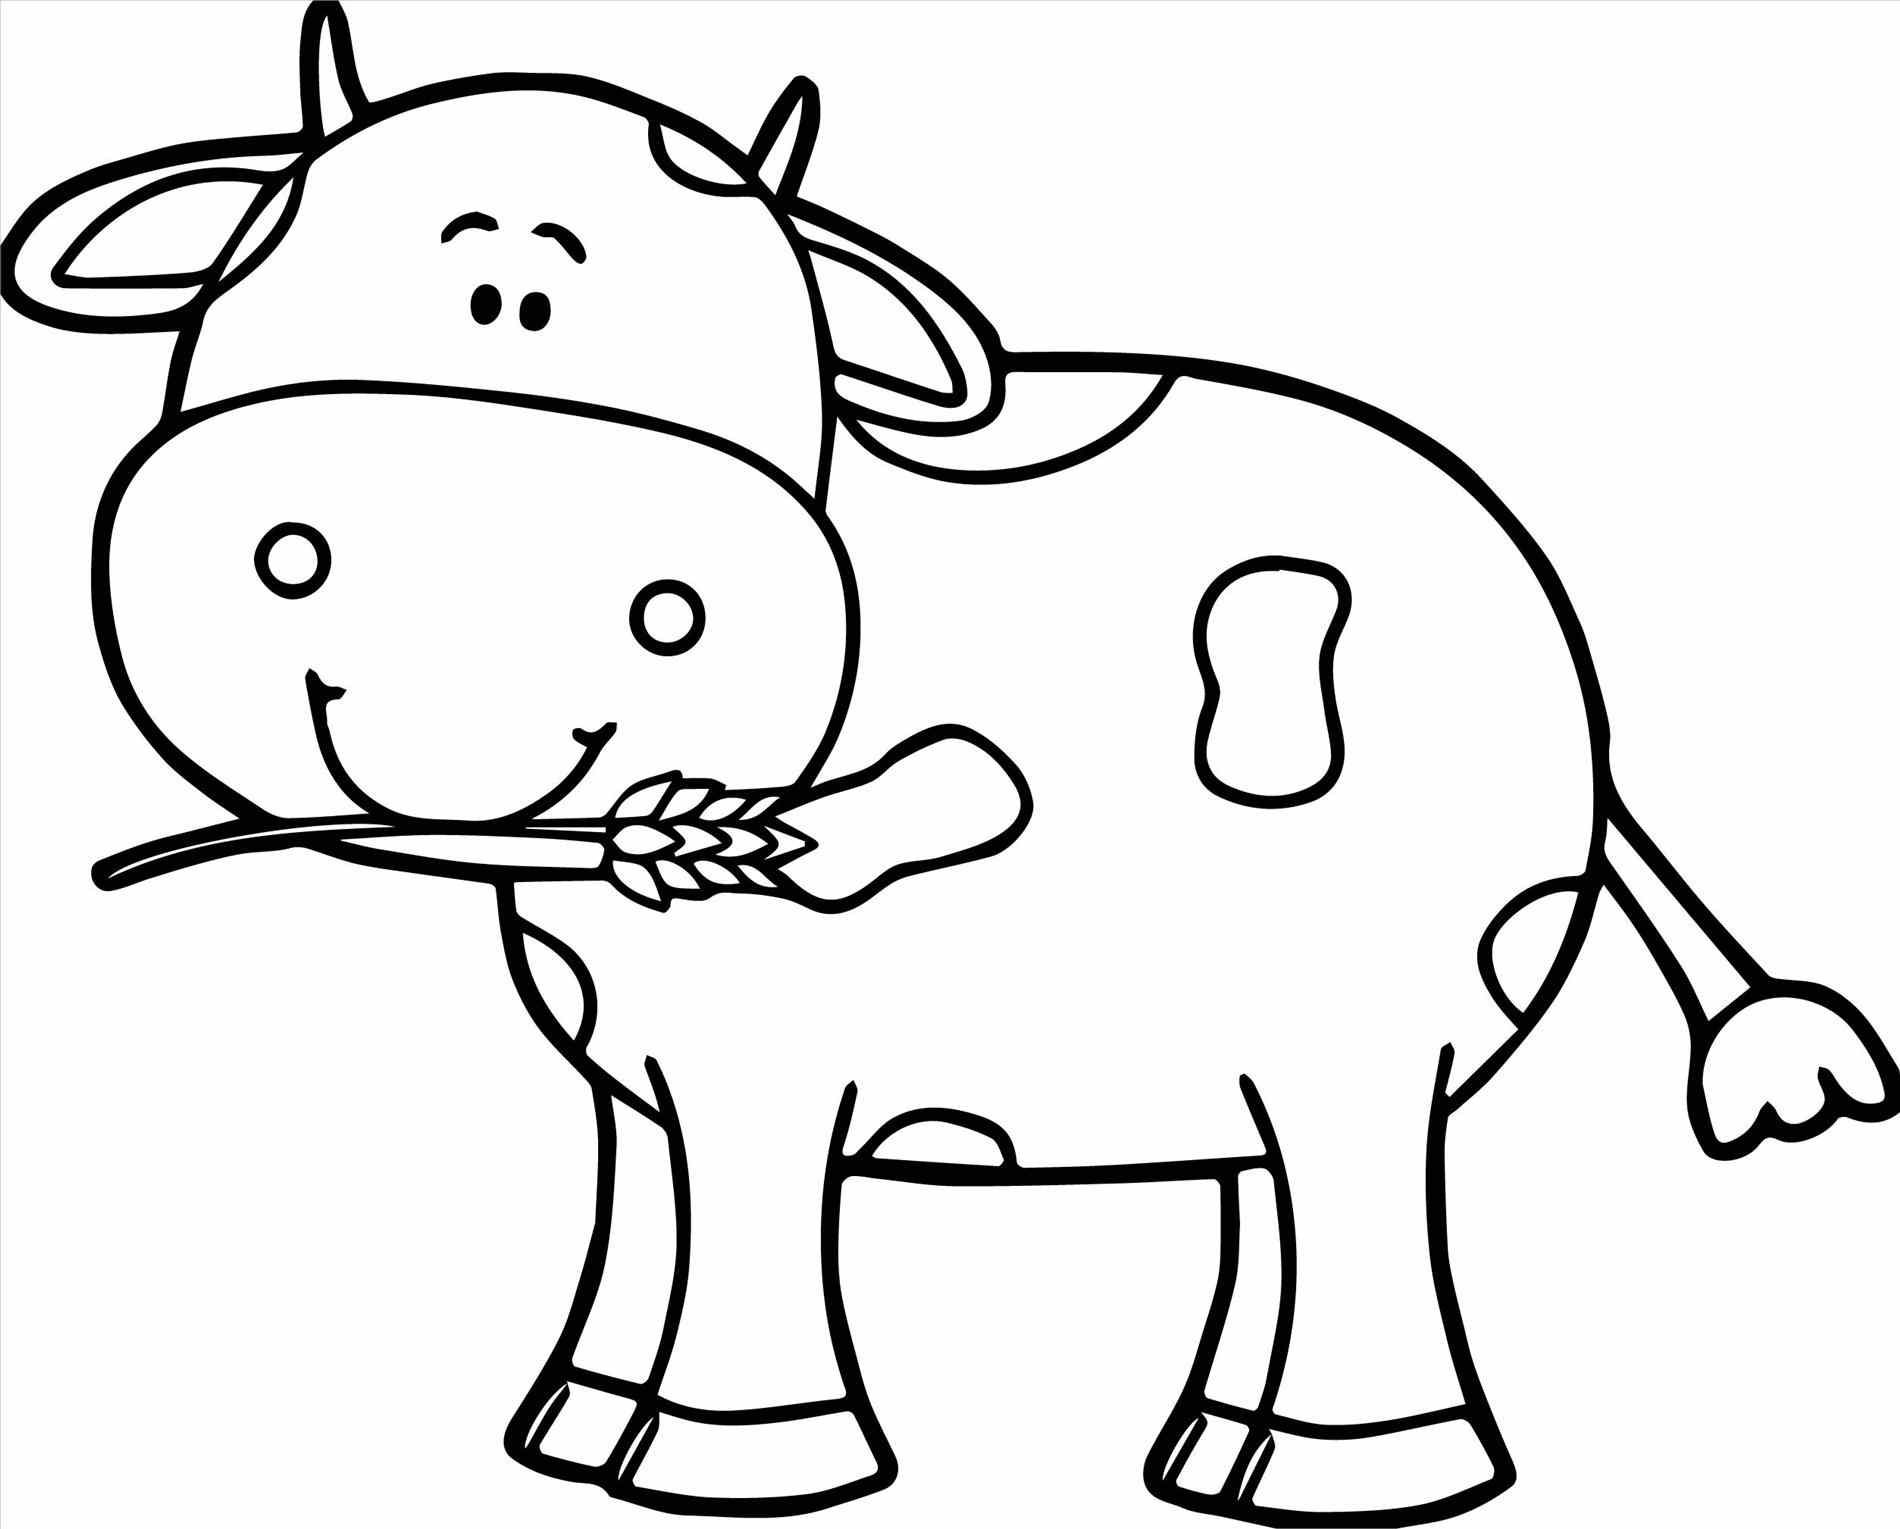 coloring cow drawing easy cow face drawing at getdrawings free download easy cow coloring drawing